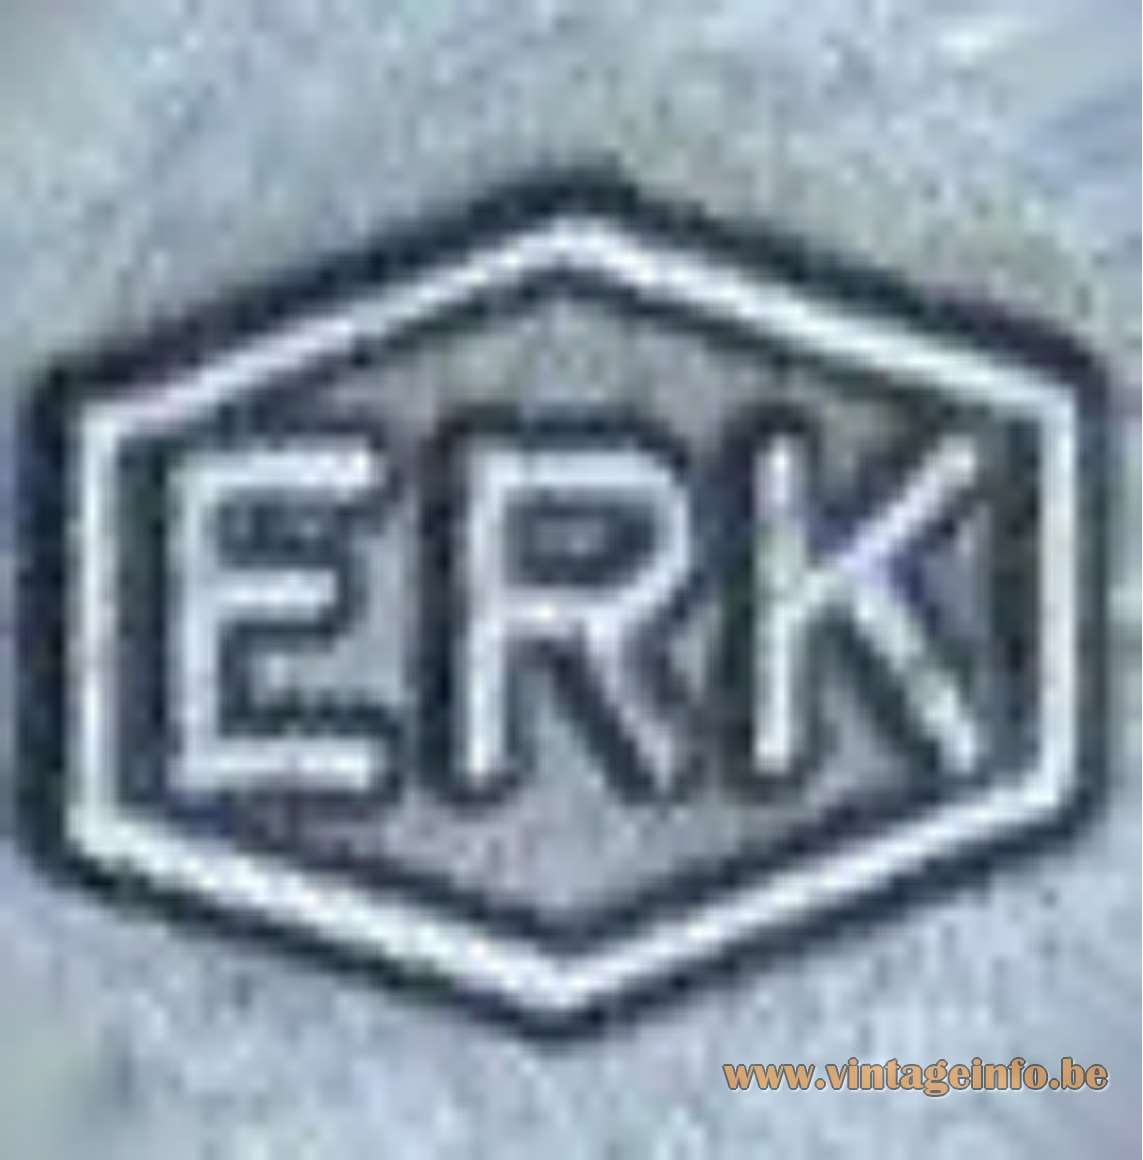 ERK logo on the switch of this 1970s East German desk lamp